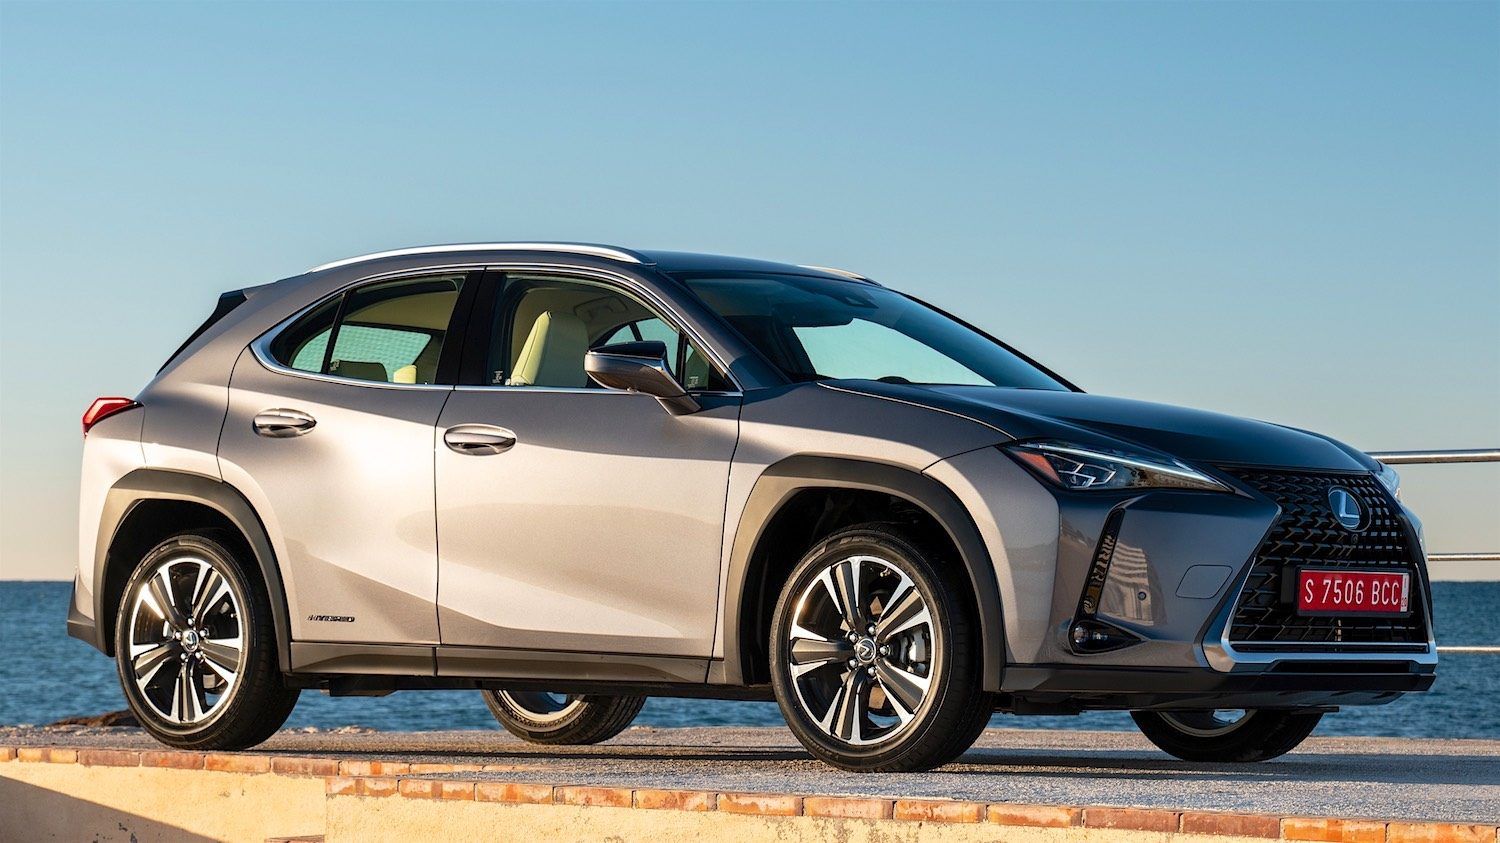 Drivecouk Reviewed Lexus Ux 250h The Urban Explorers Suv